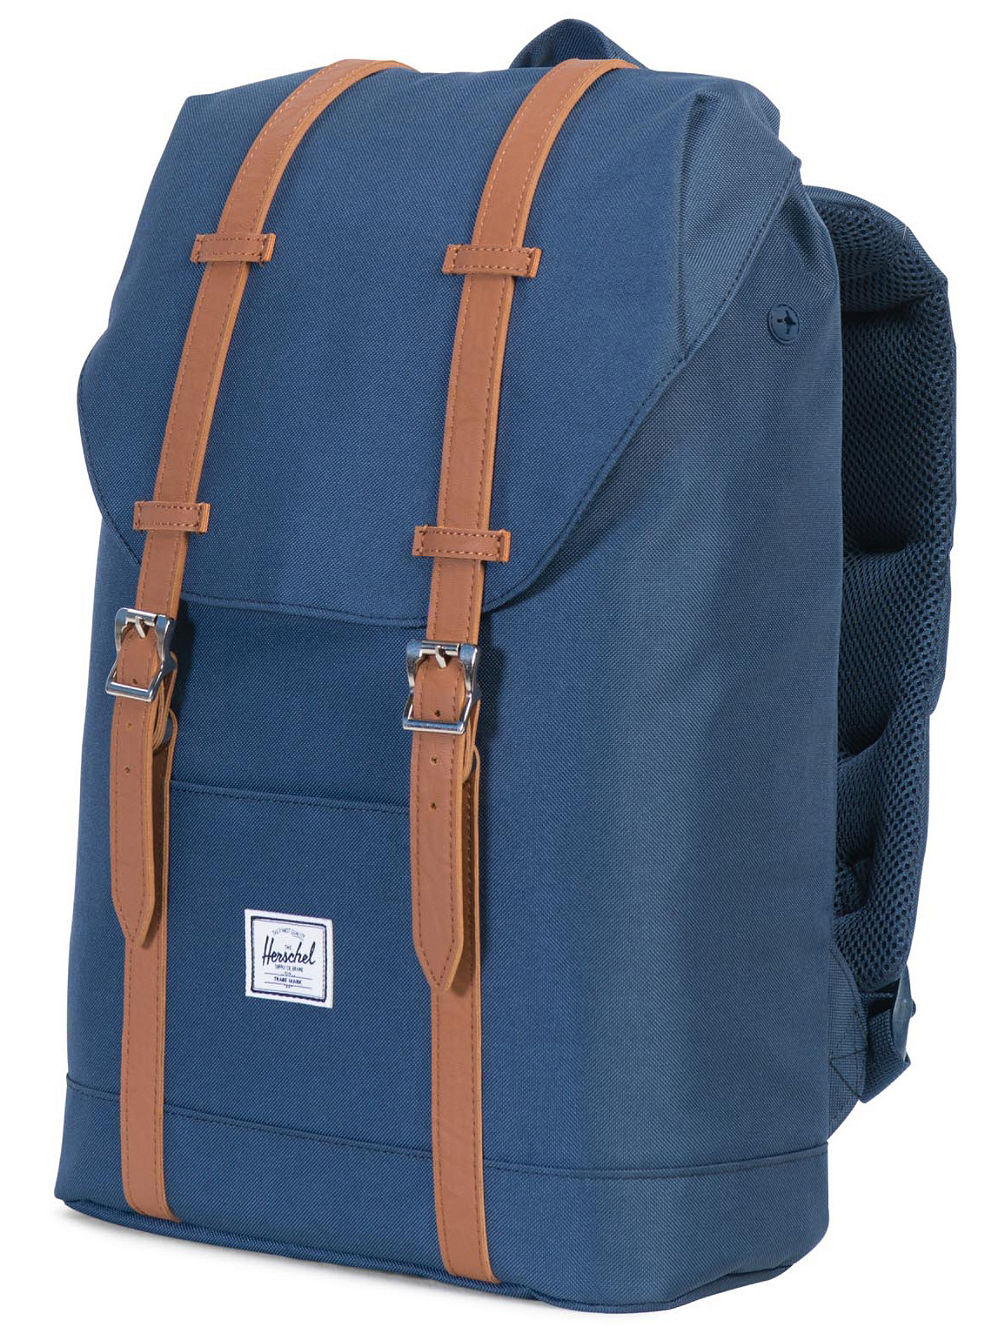 Buy Herschel Retreat Mid-Volume Backpack online at blue-tomato.com e46e3a0dd27d3